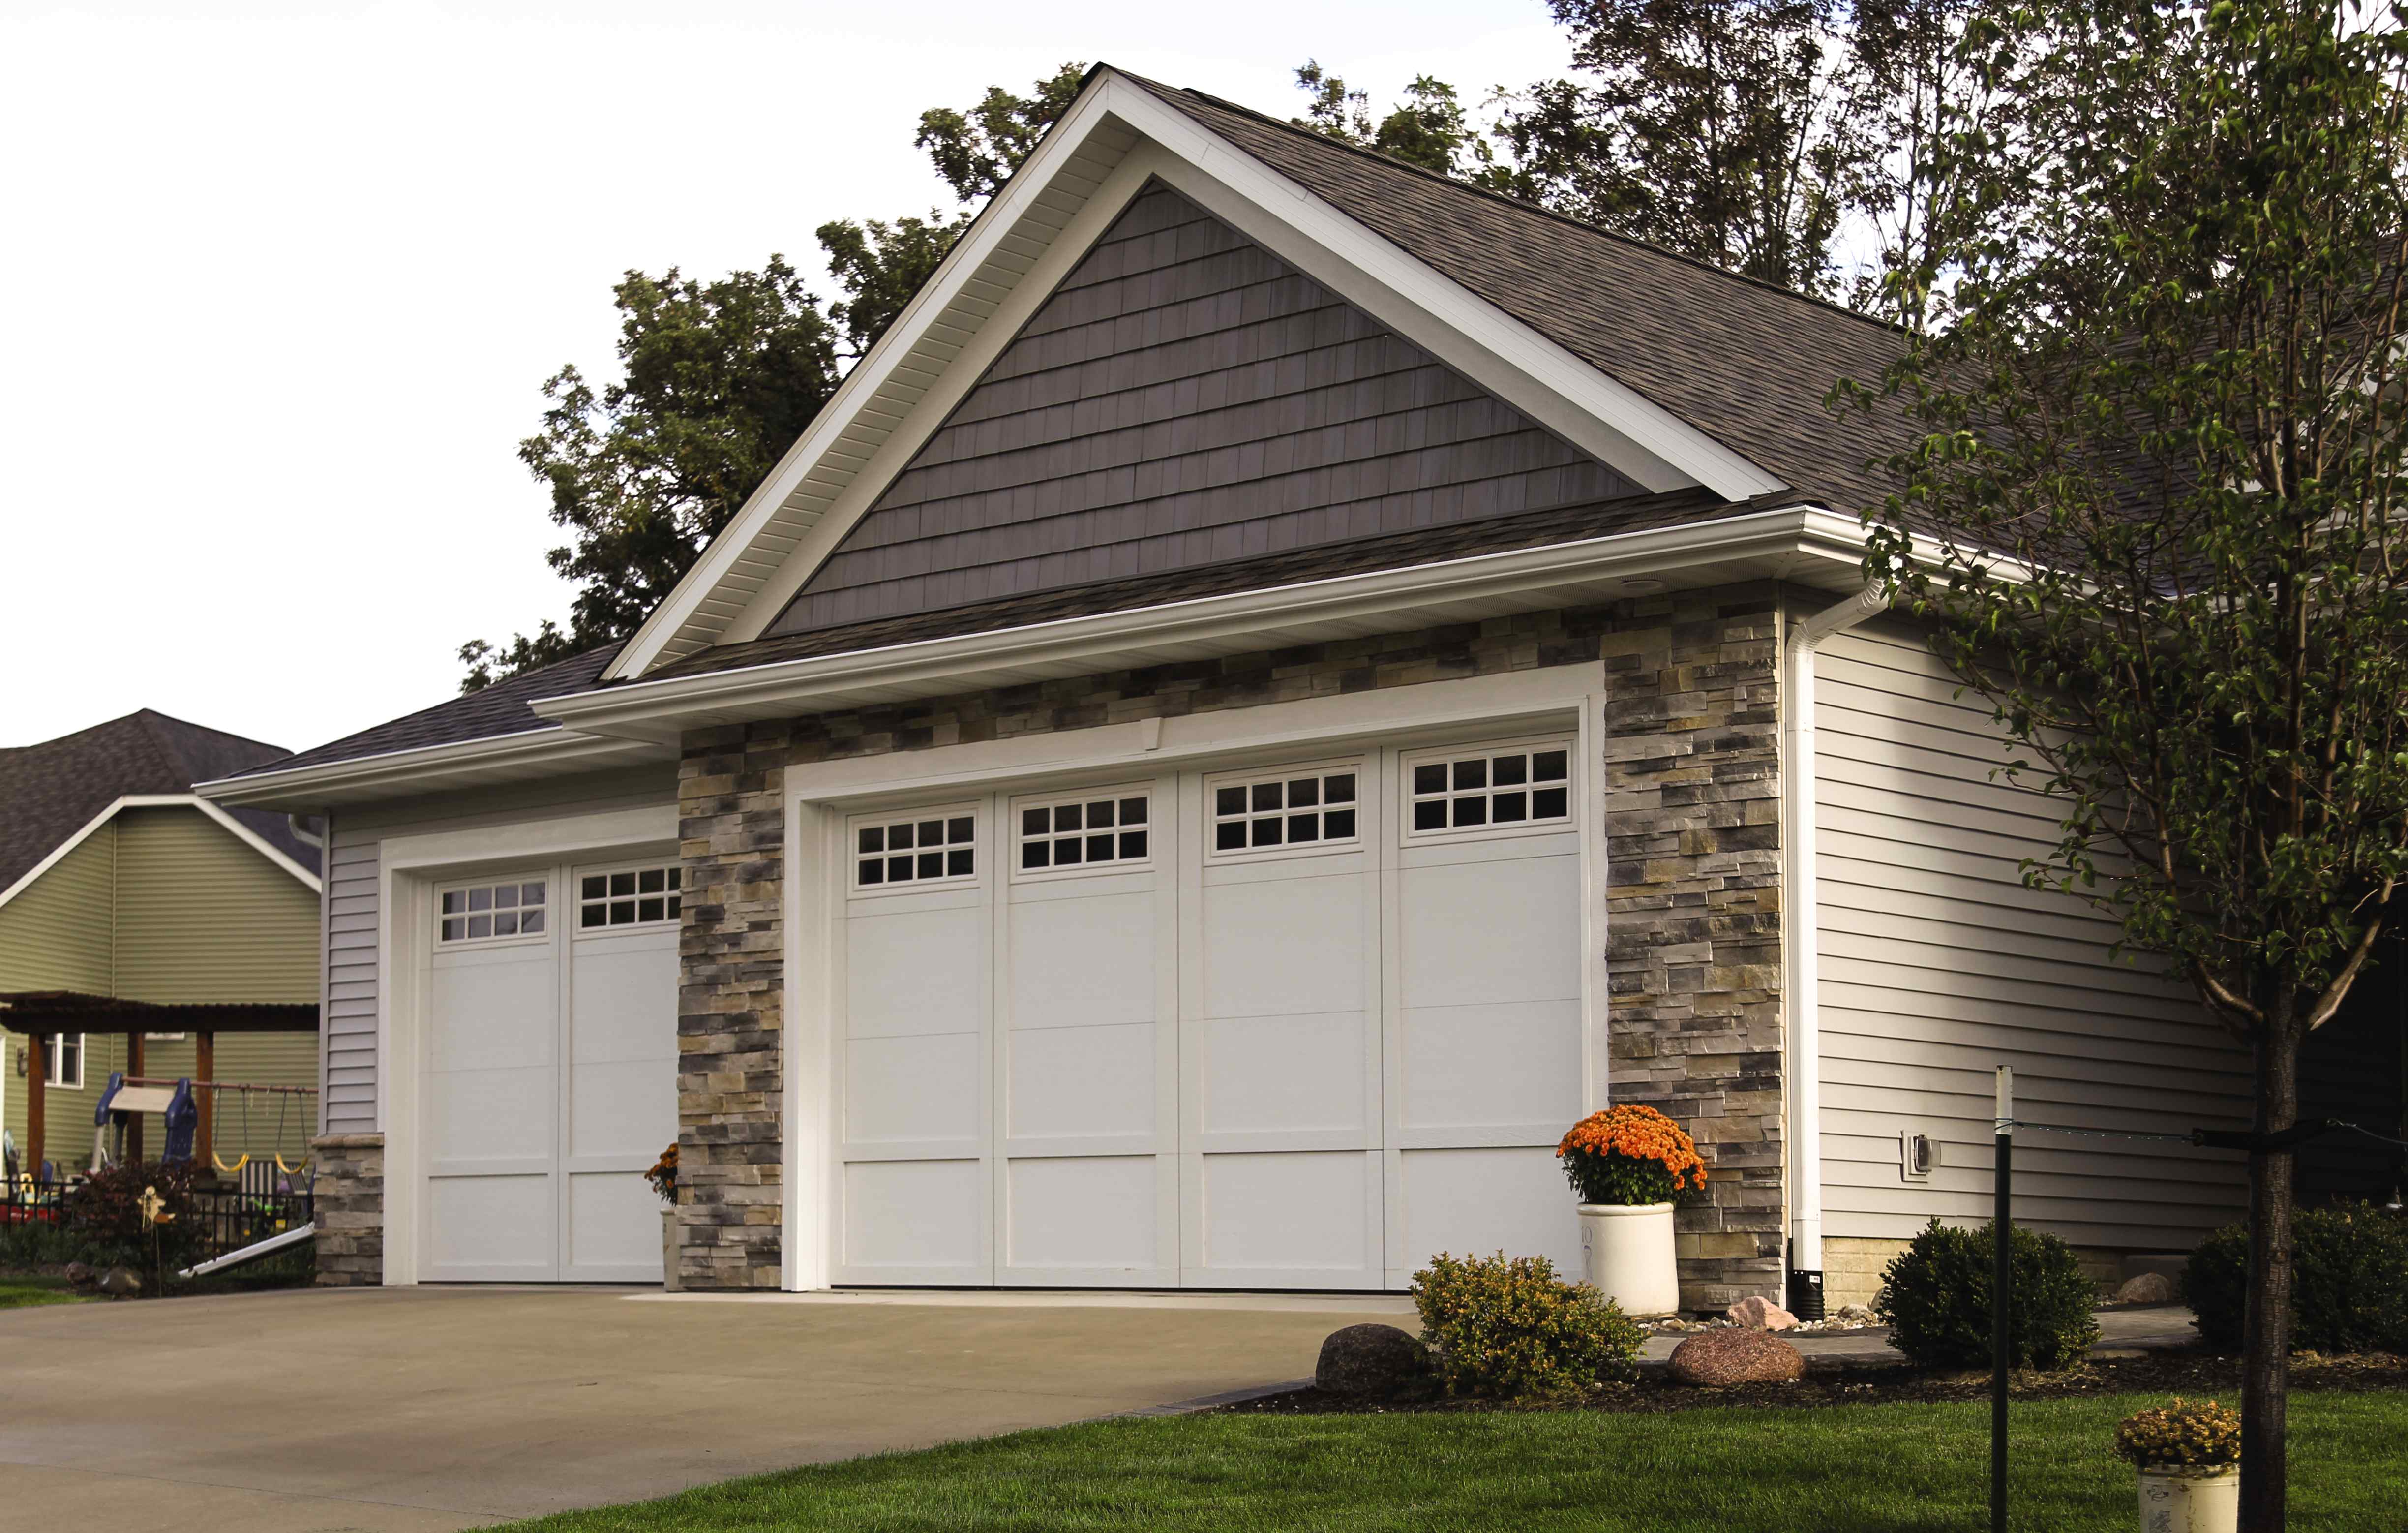 Courtyard Collection energy-efficient steel insulated garage doors - residential